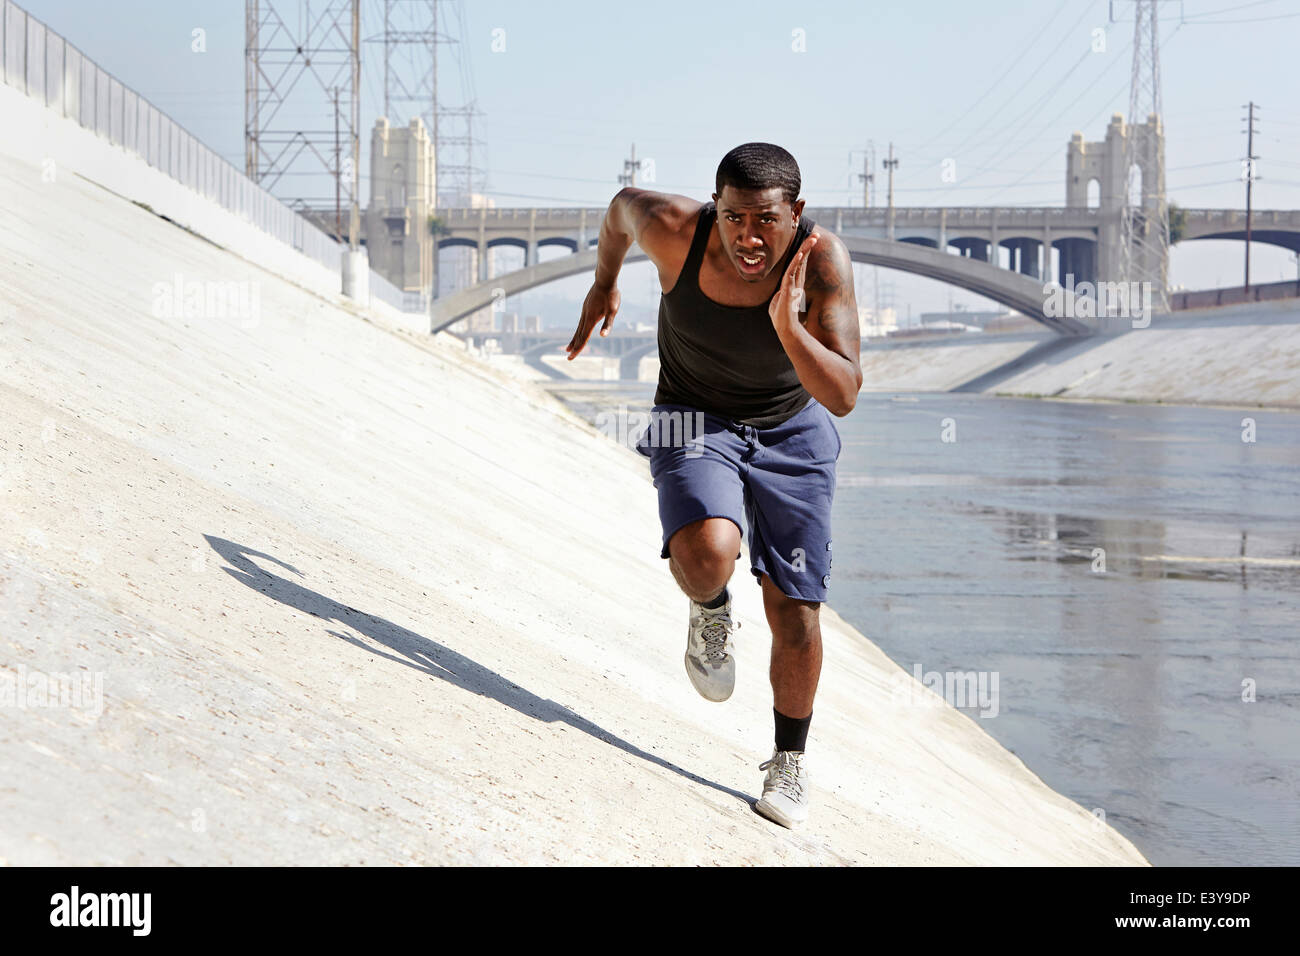 Young man speed running along riverbank - Stock Image